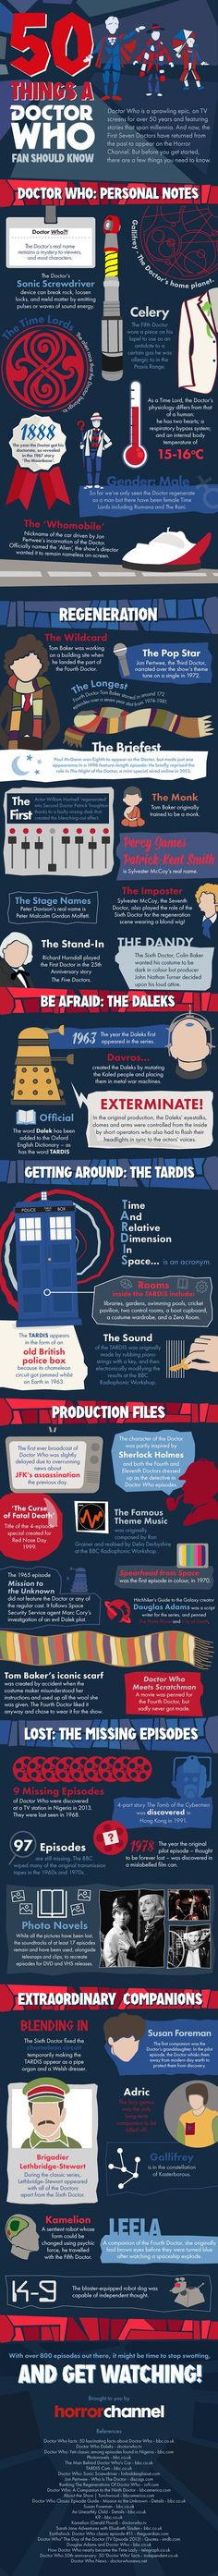 "The television show, ""Doctor Who"" has been a legend on our screens for over 50 years. Horror Channel  has put together this handy guide for those who may be new to this classic Sci-Fi drama or simply those fans who wish to summarize the series."